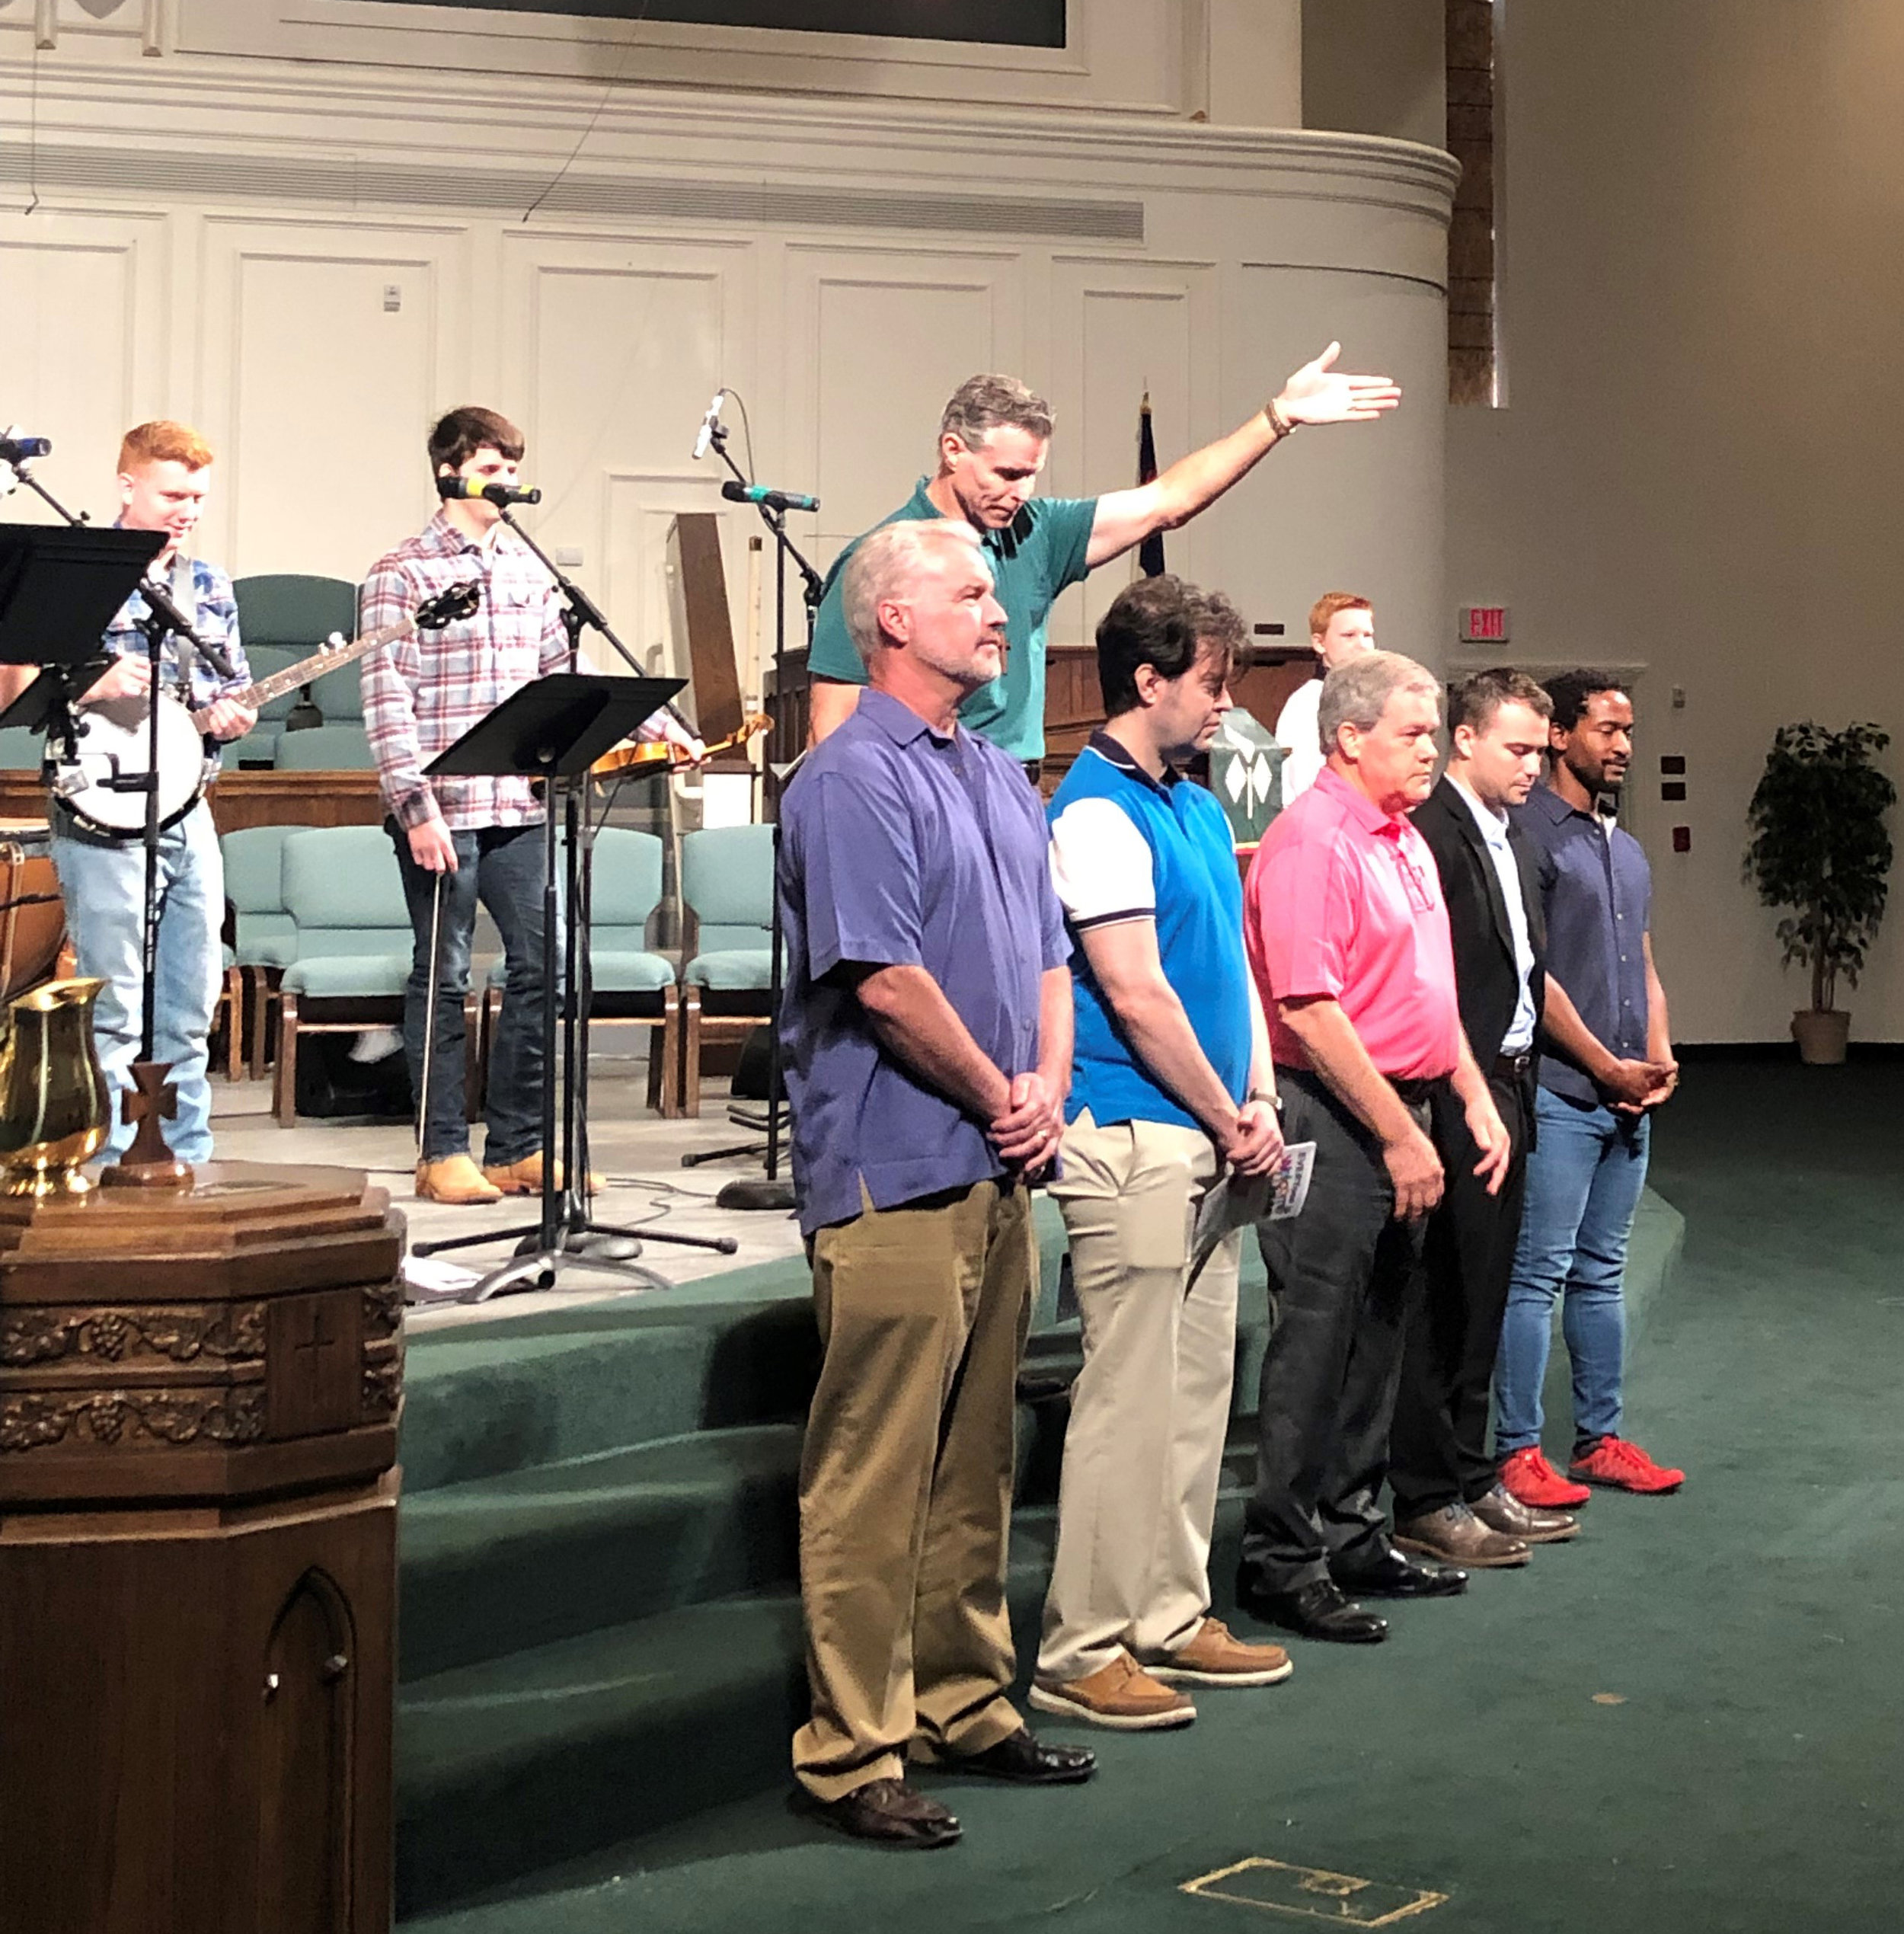 Our Honduras Mission Team: Mark McLain, Kevin Davenport, Alan England, Will McLain,, and Nigel Eastman. They will travel to the La Mosquitia region of Honduras July 28-Aug. 4.